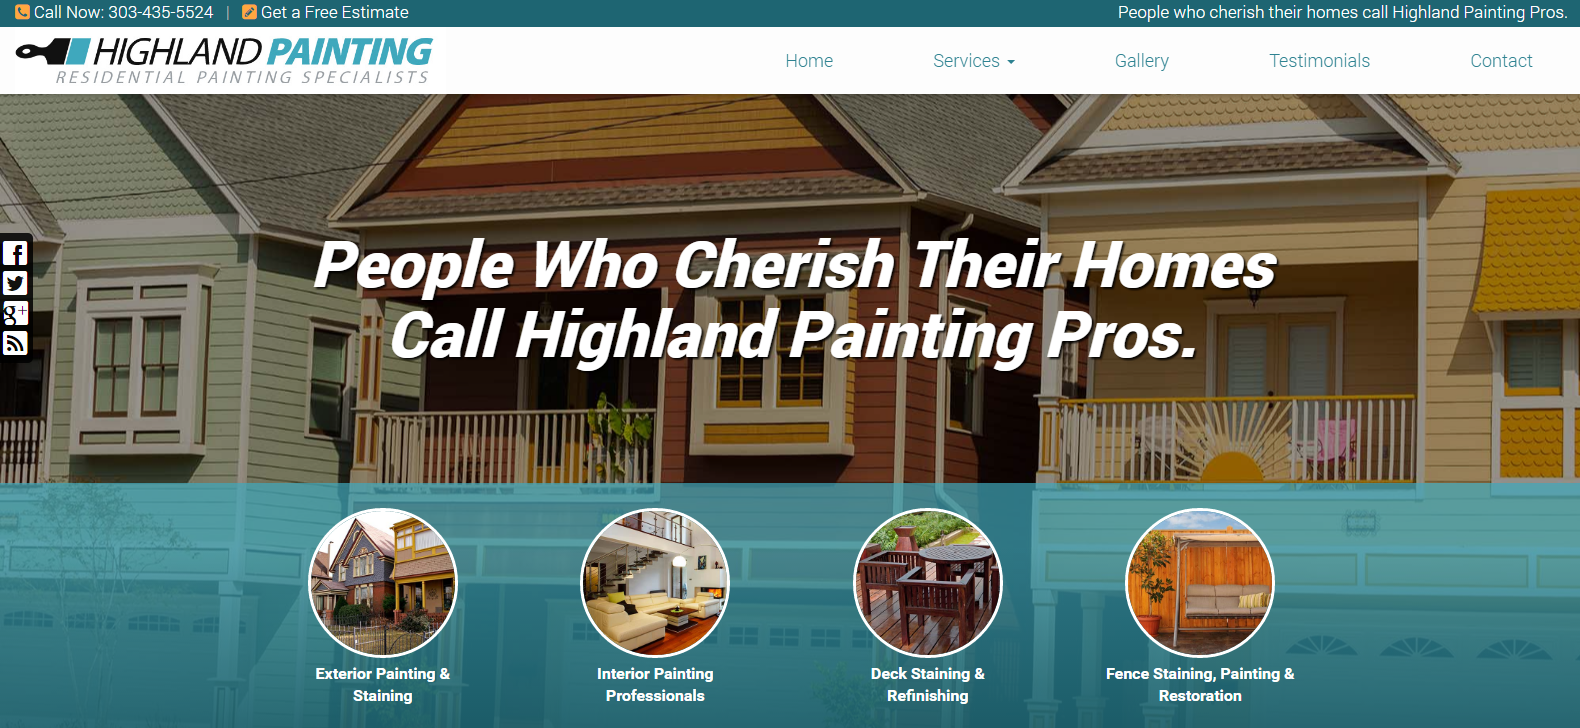 New Website Launched: Highland Painting Pros